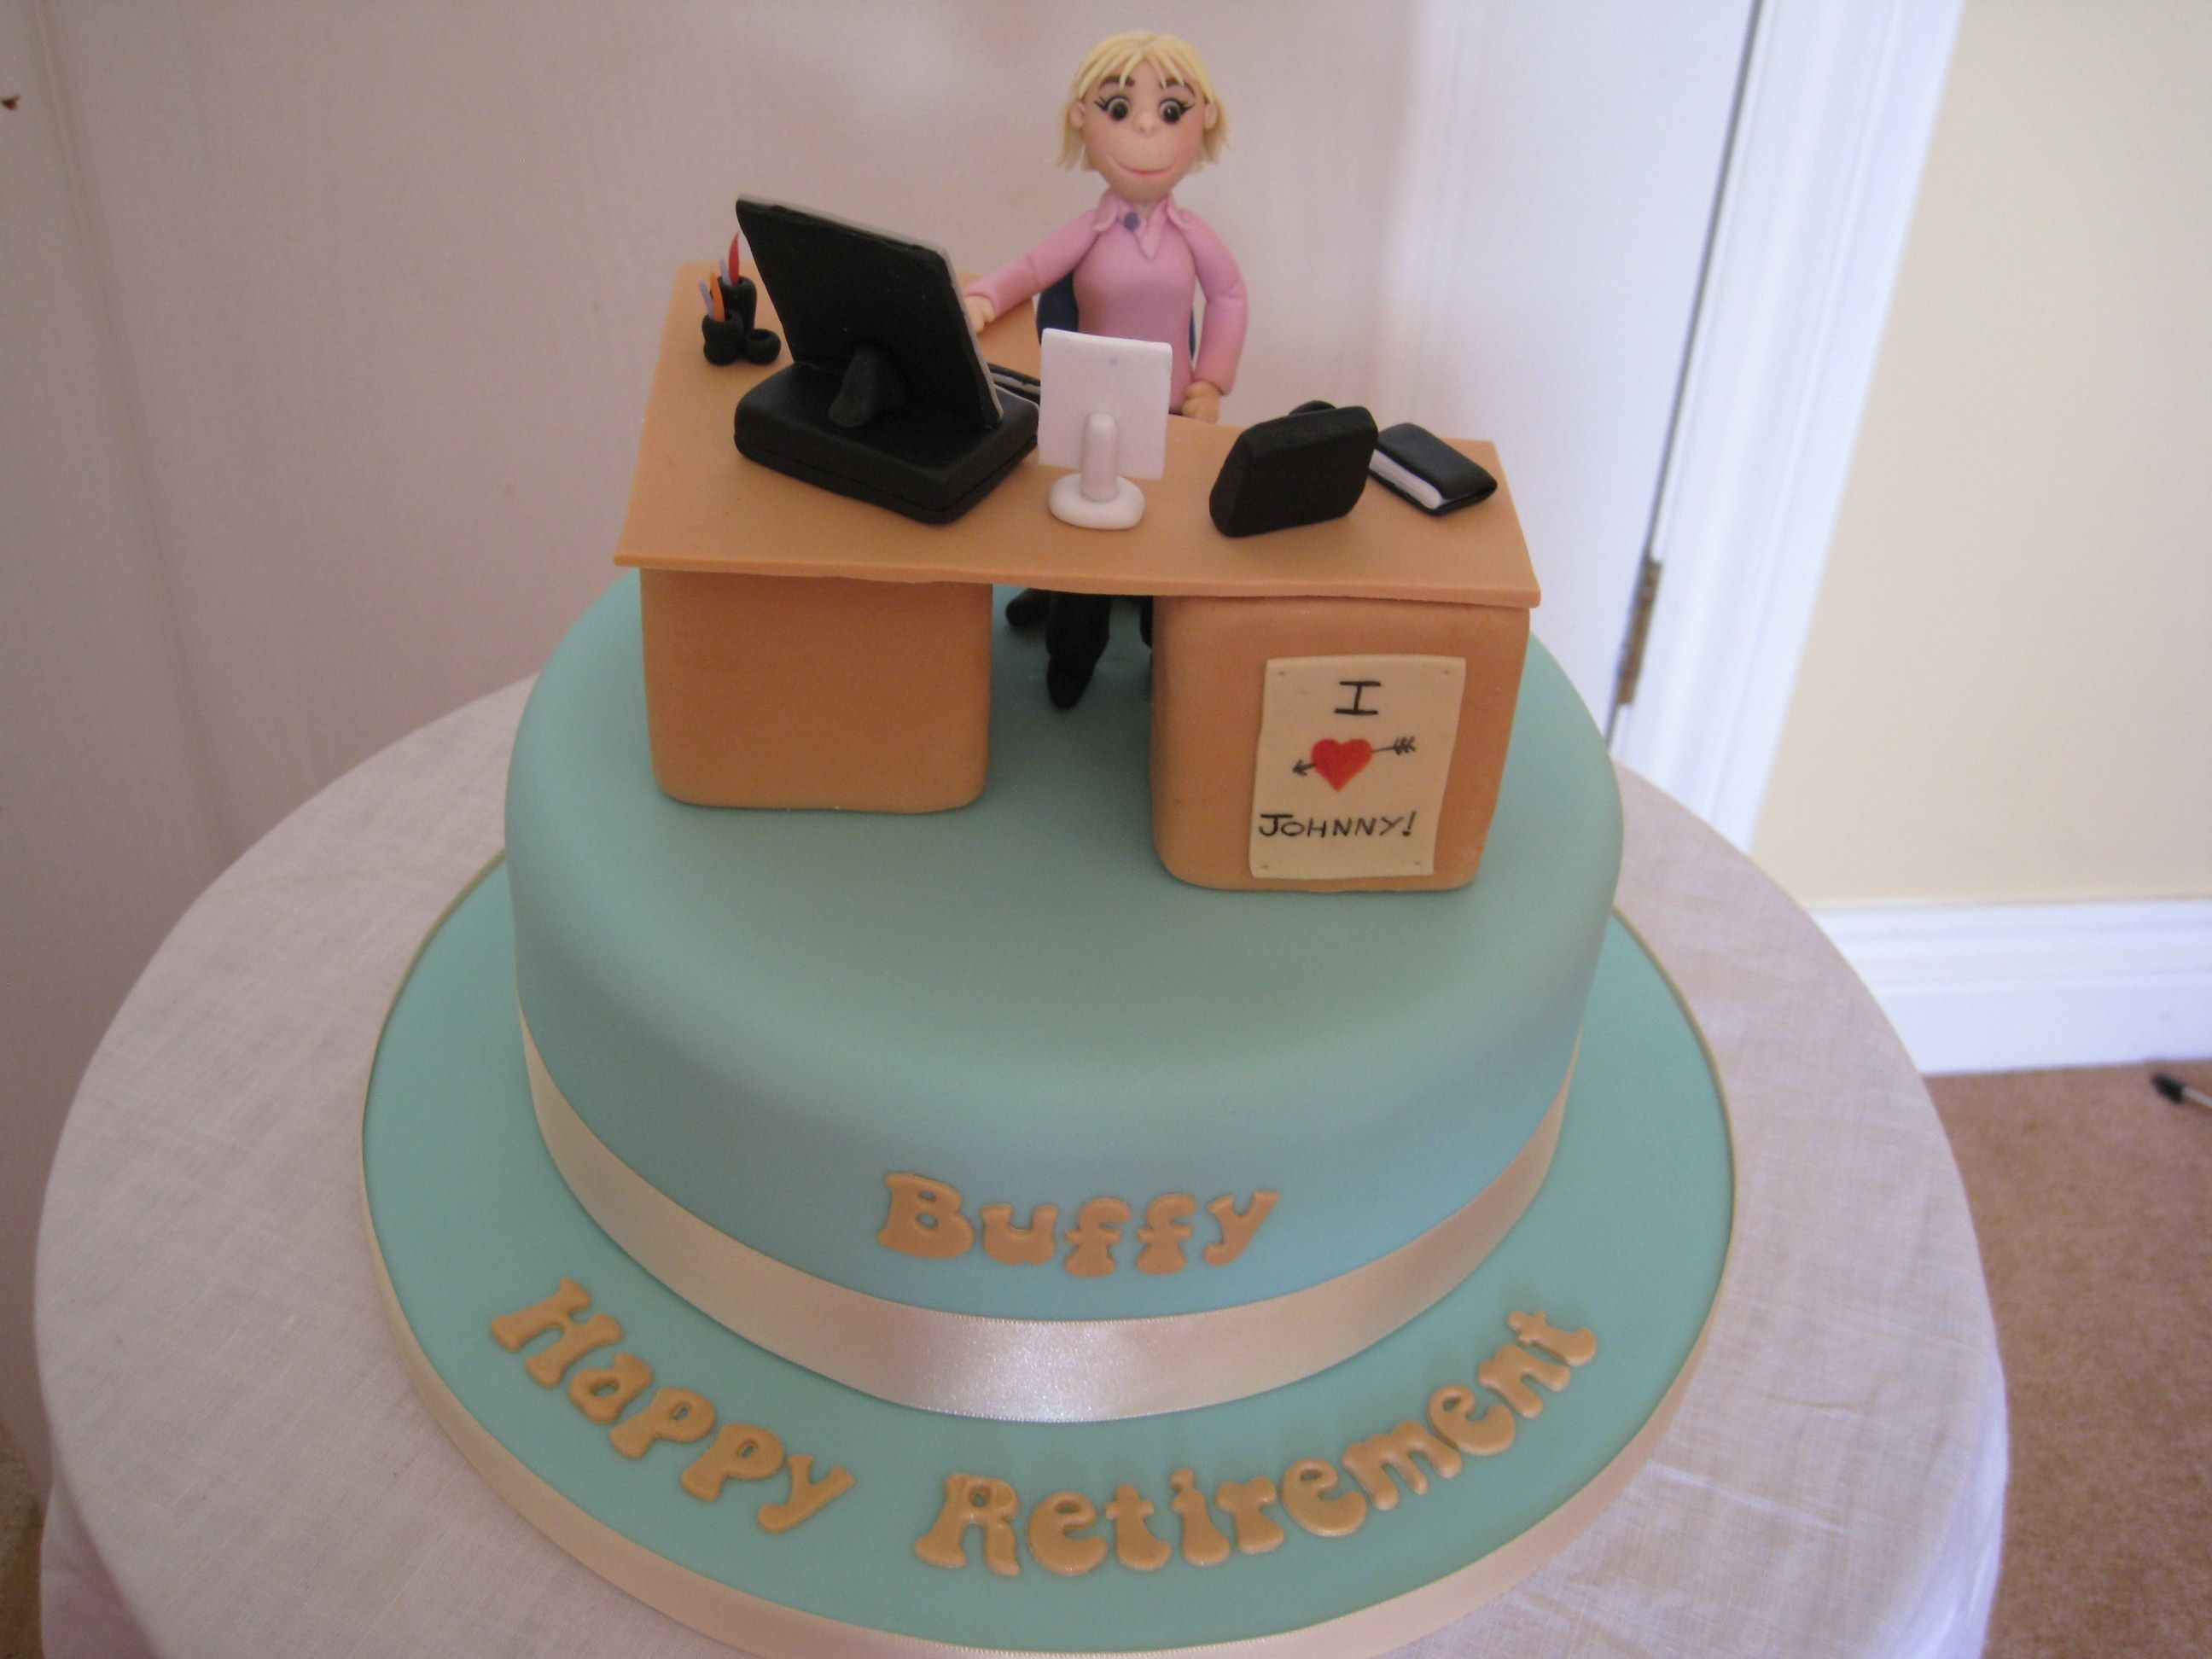 Fondant Cake Designs For 60th Birthday : Office Desk Retirement Cake - Buffy s retirement cake ...